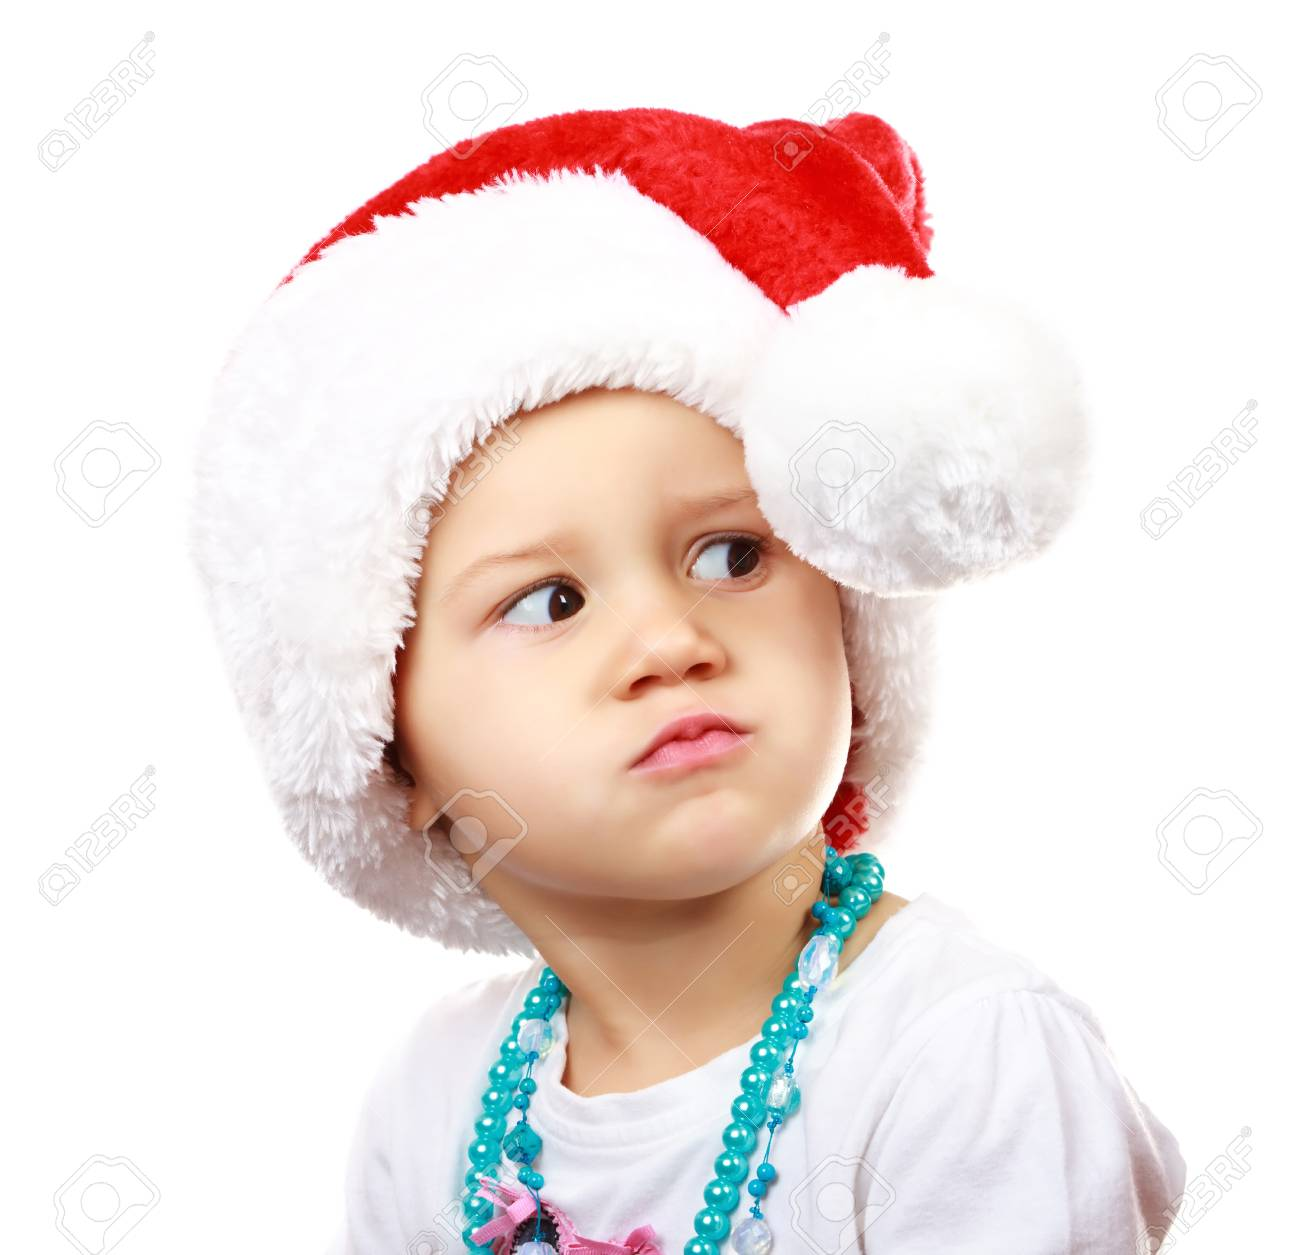 Baby in Santa Claus hat on white background Stock Photo - 11563137